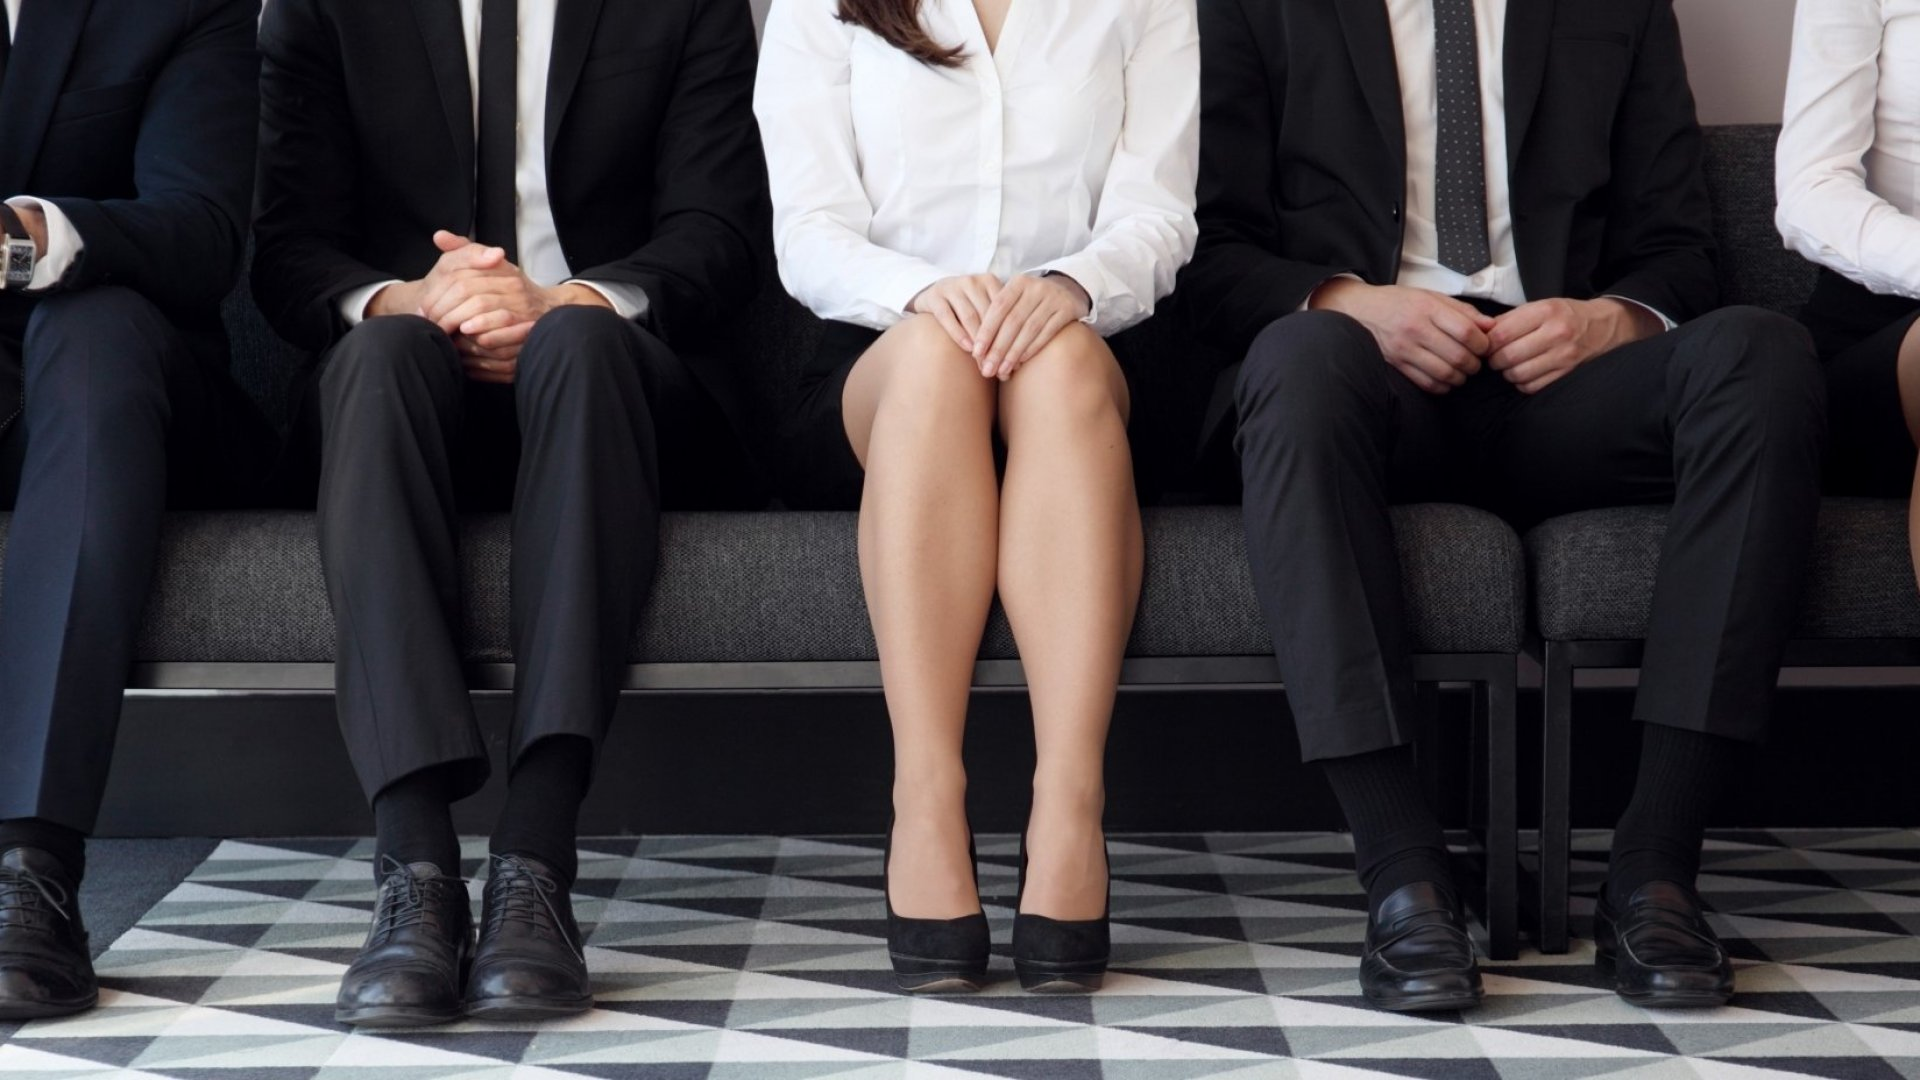 6 Signs to Immediately Identify a Job Candidate With High or Low Emotional Intelligence